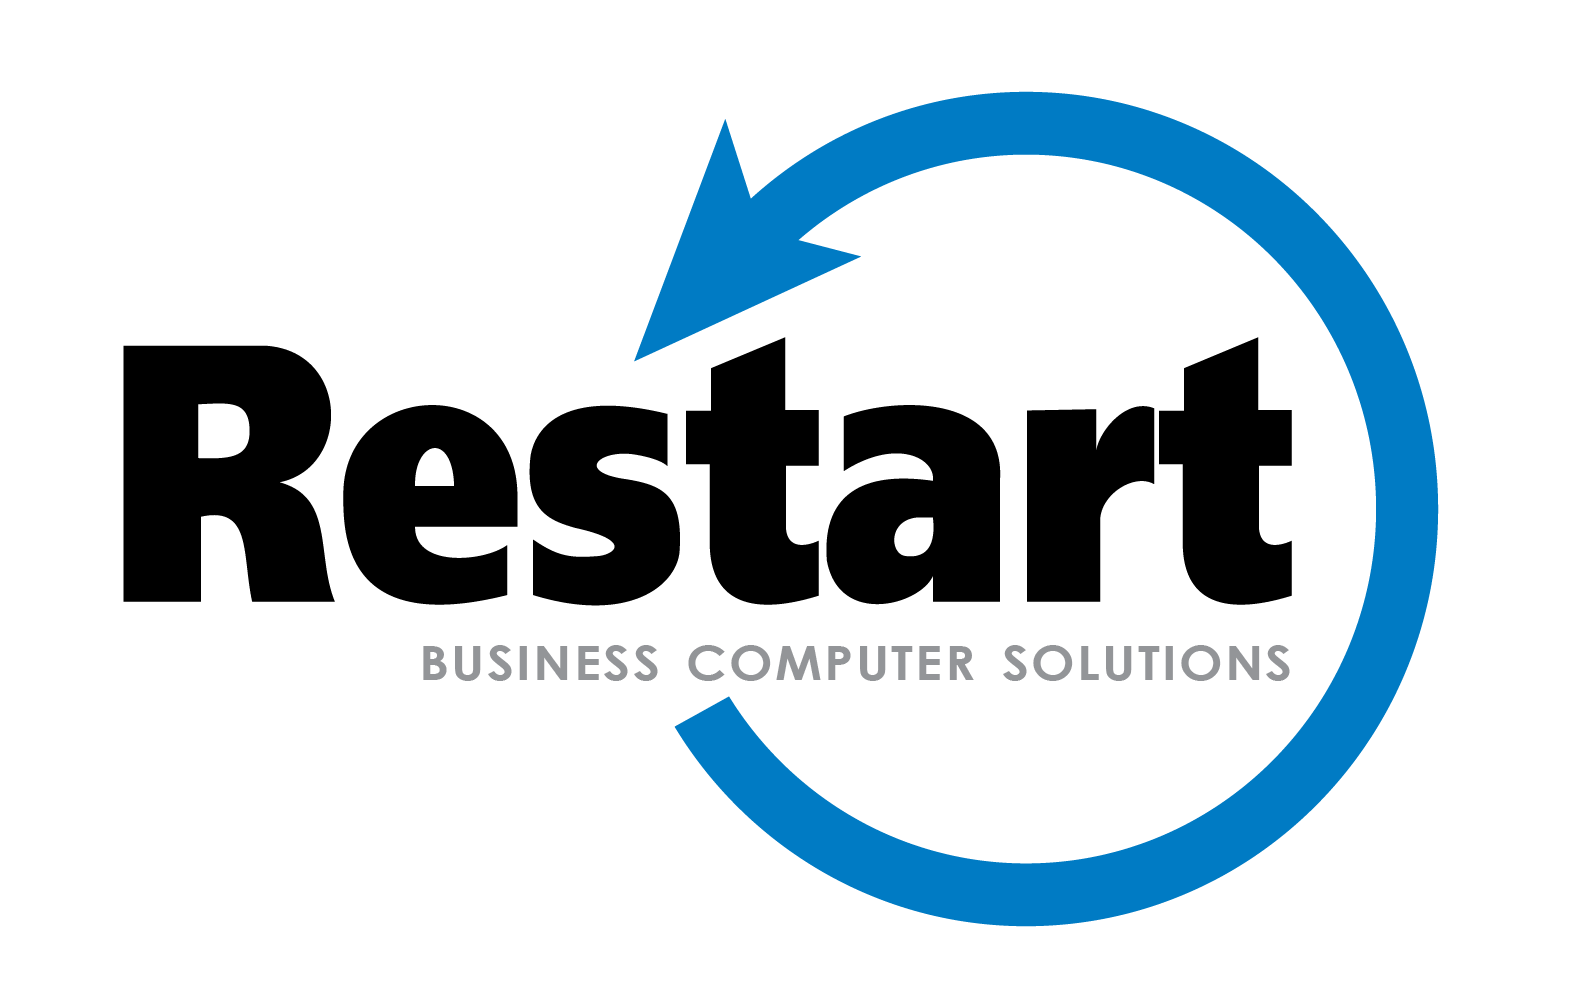 Restart Business Computer Solutions